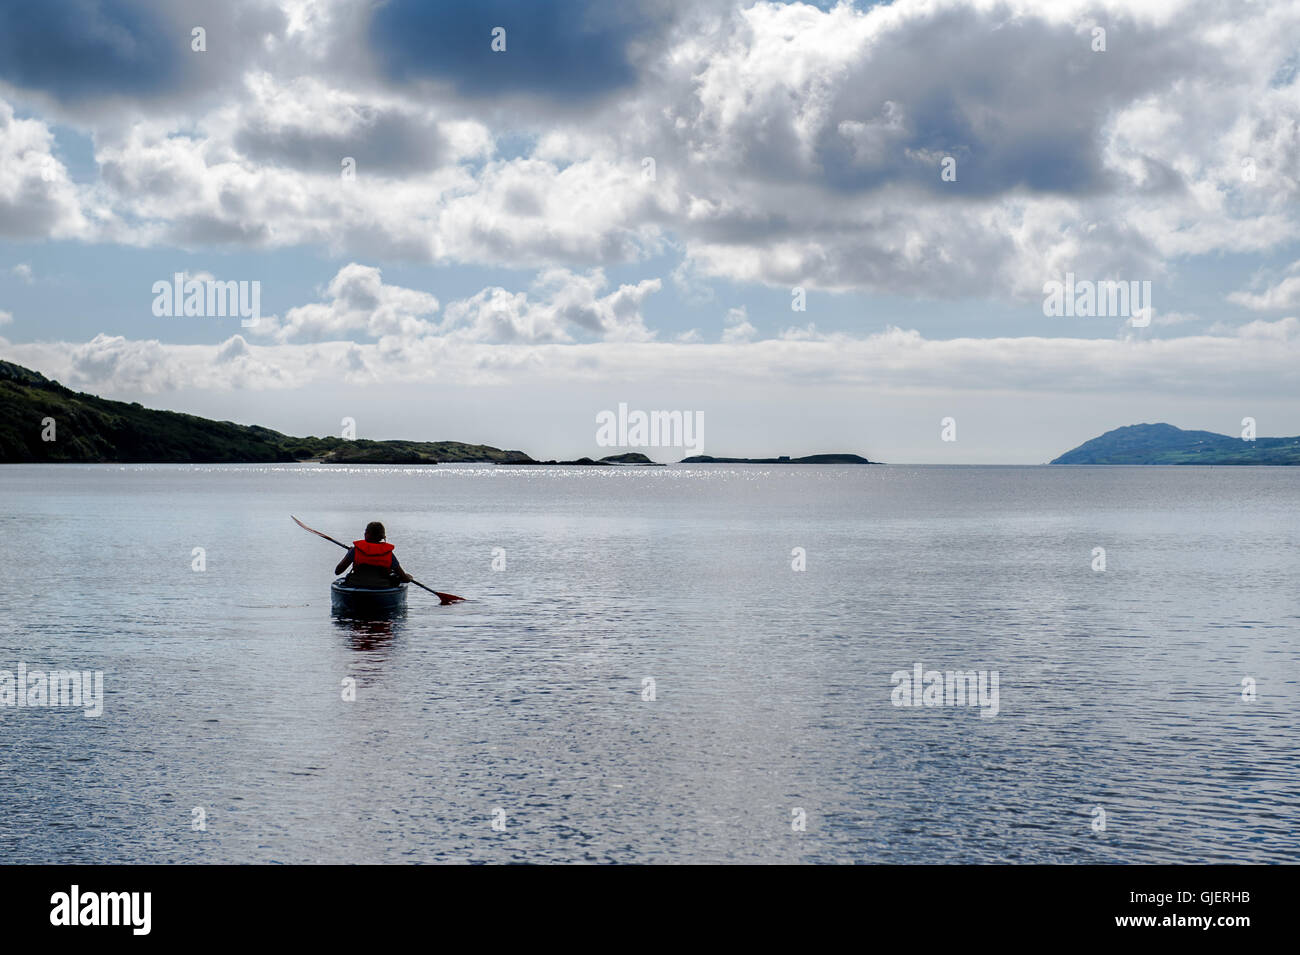 A female kayaker paddles away from the sea shore on a calm sea in West Cork, Ireland. - Stock Image